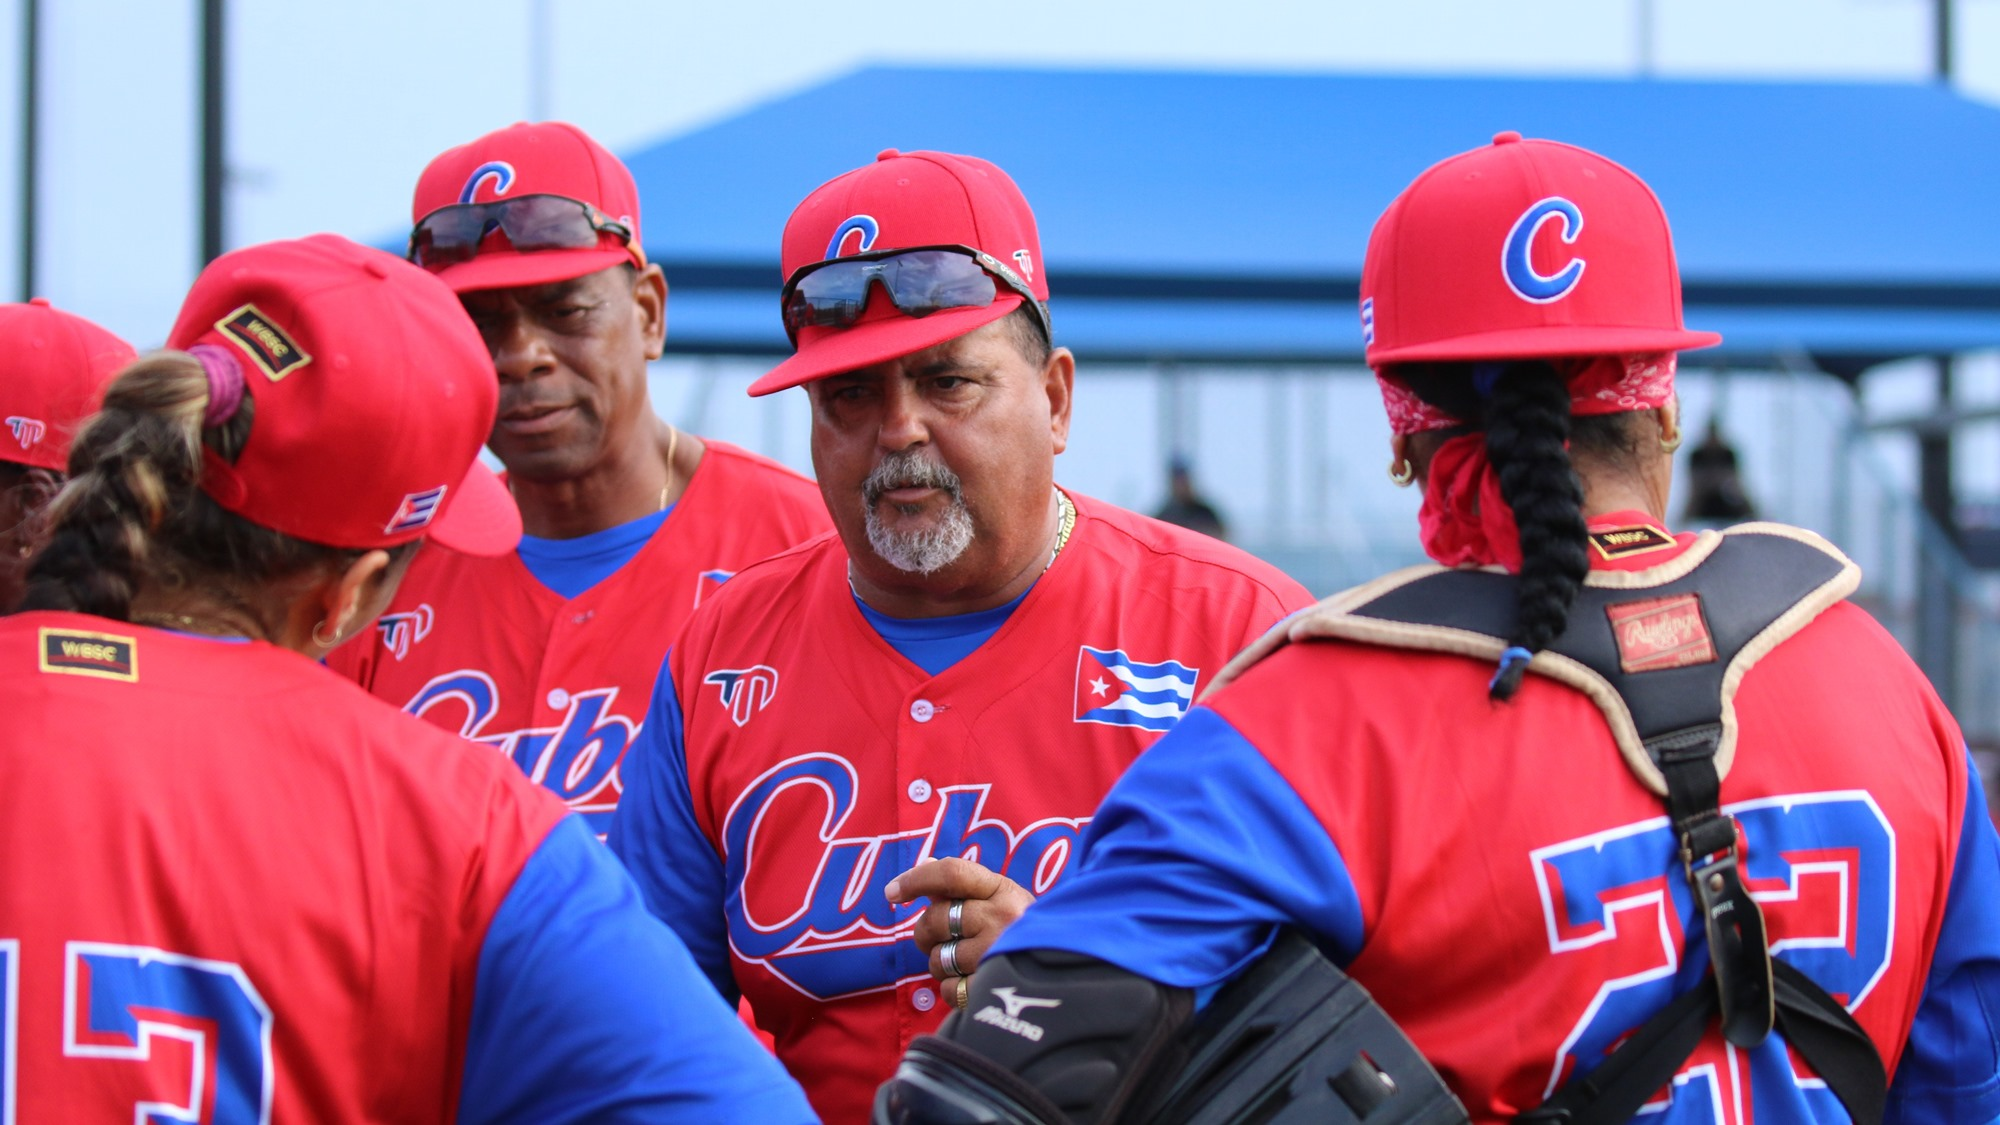 Cuba beat Korea in the first game of the consolation round